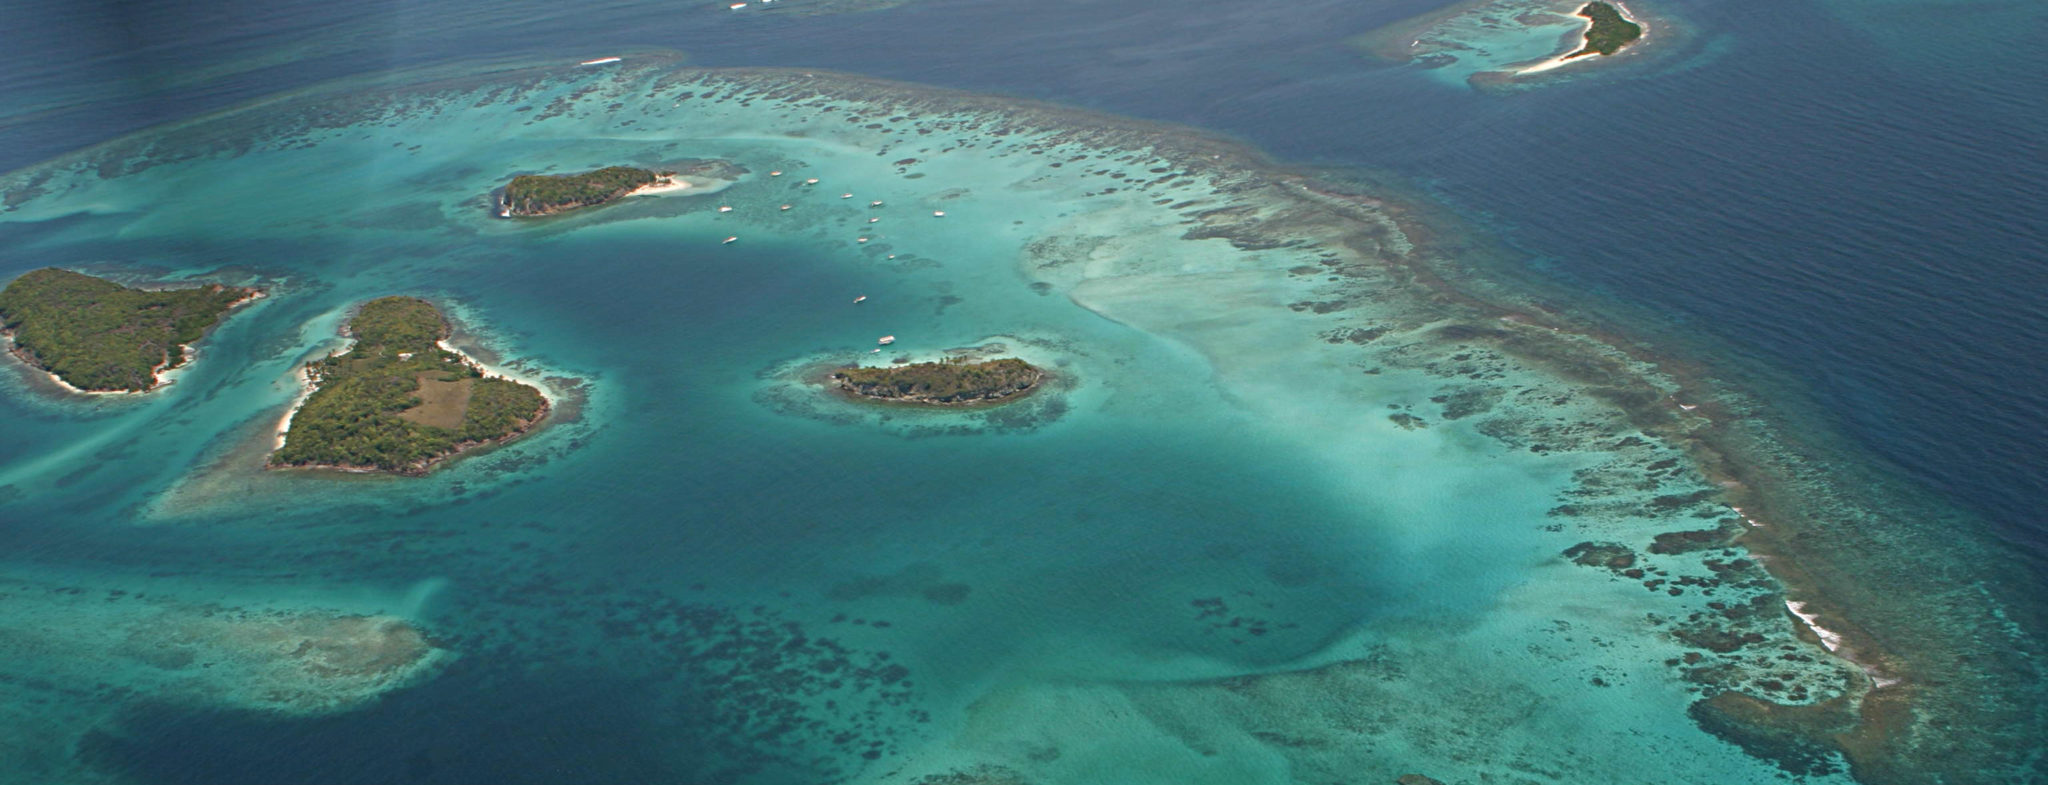 Tobago Cays in The Grenadines Caribbean